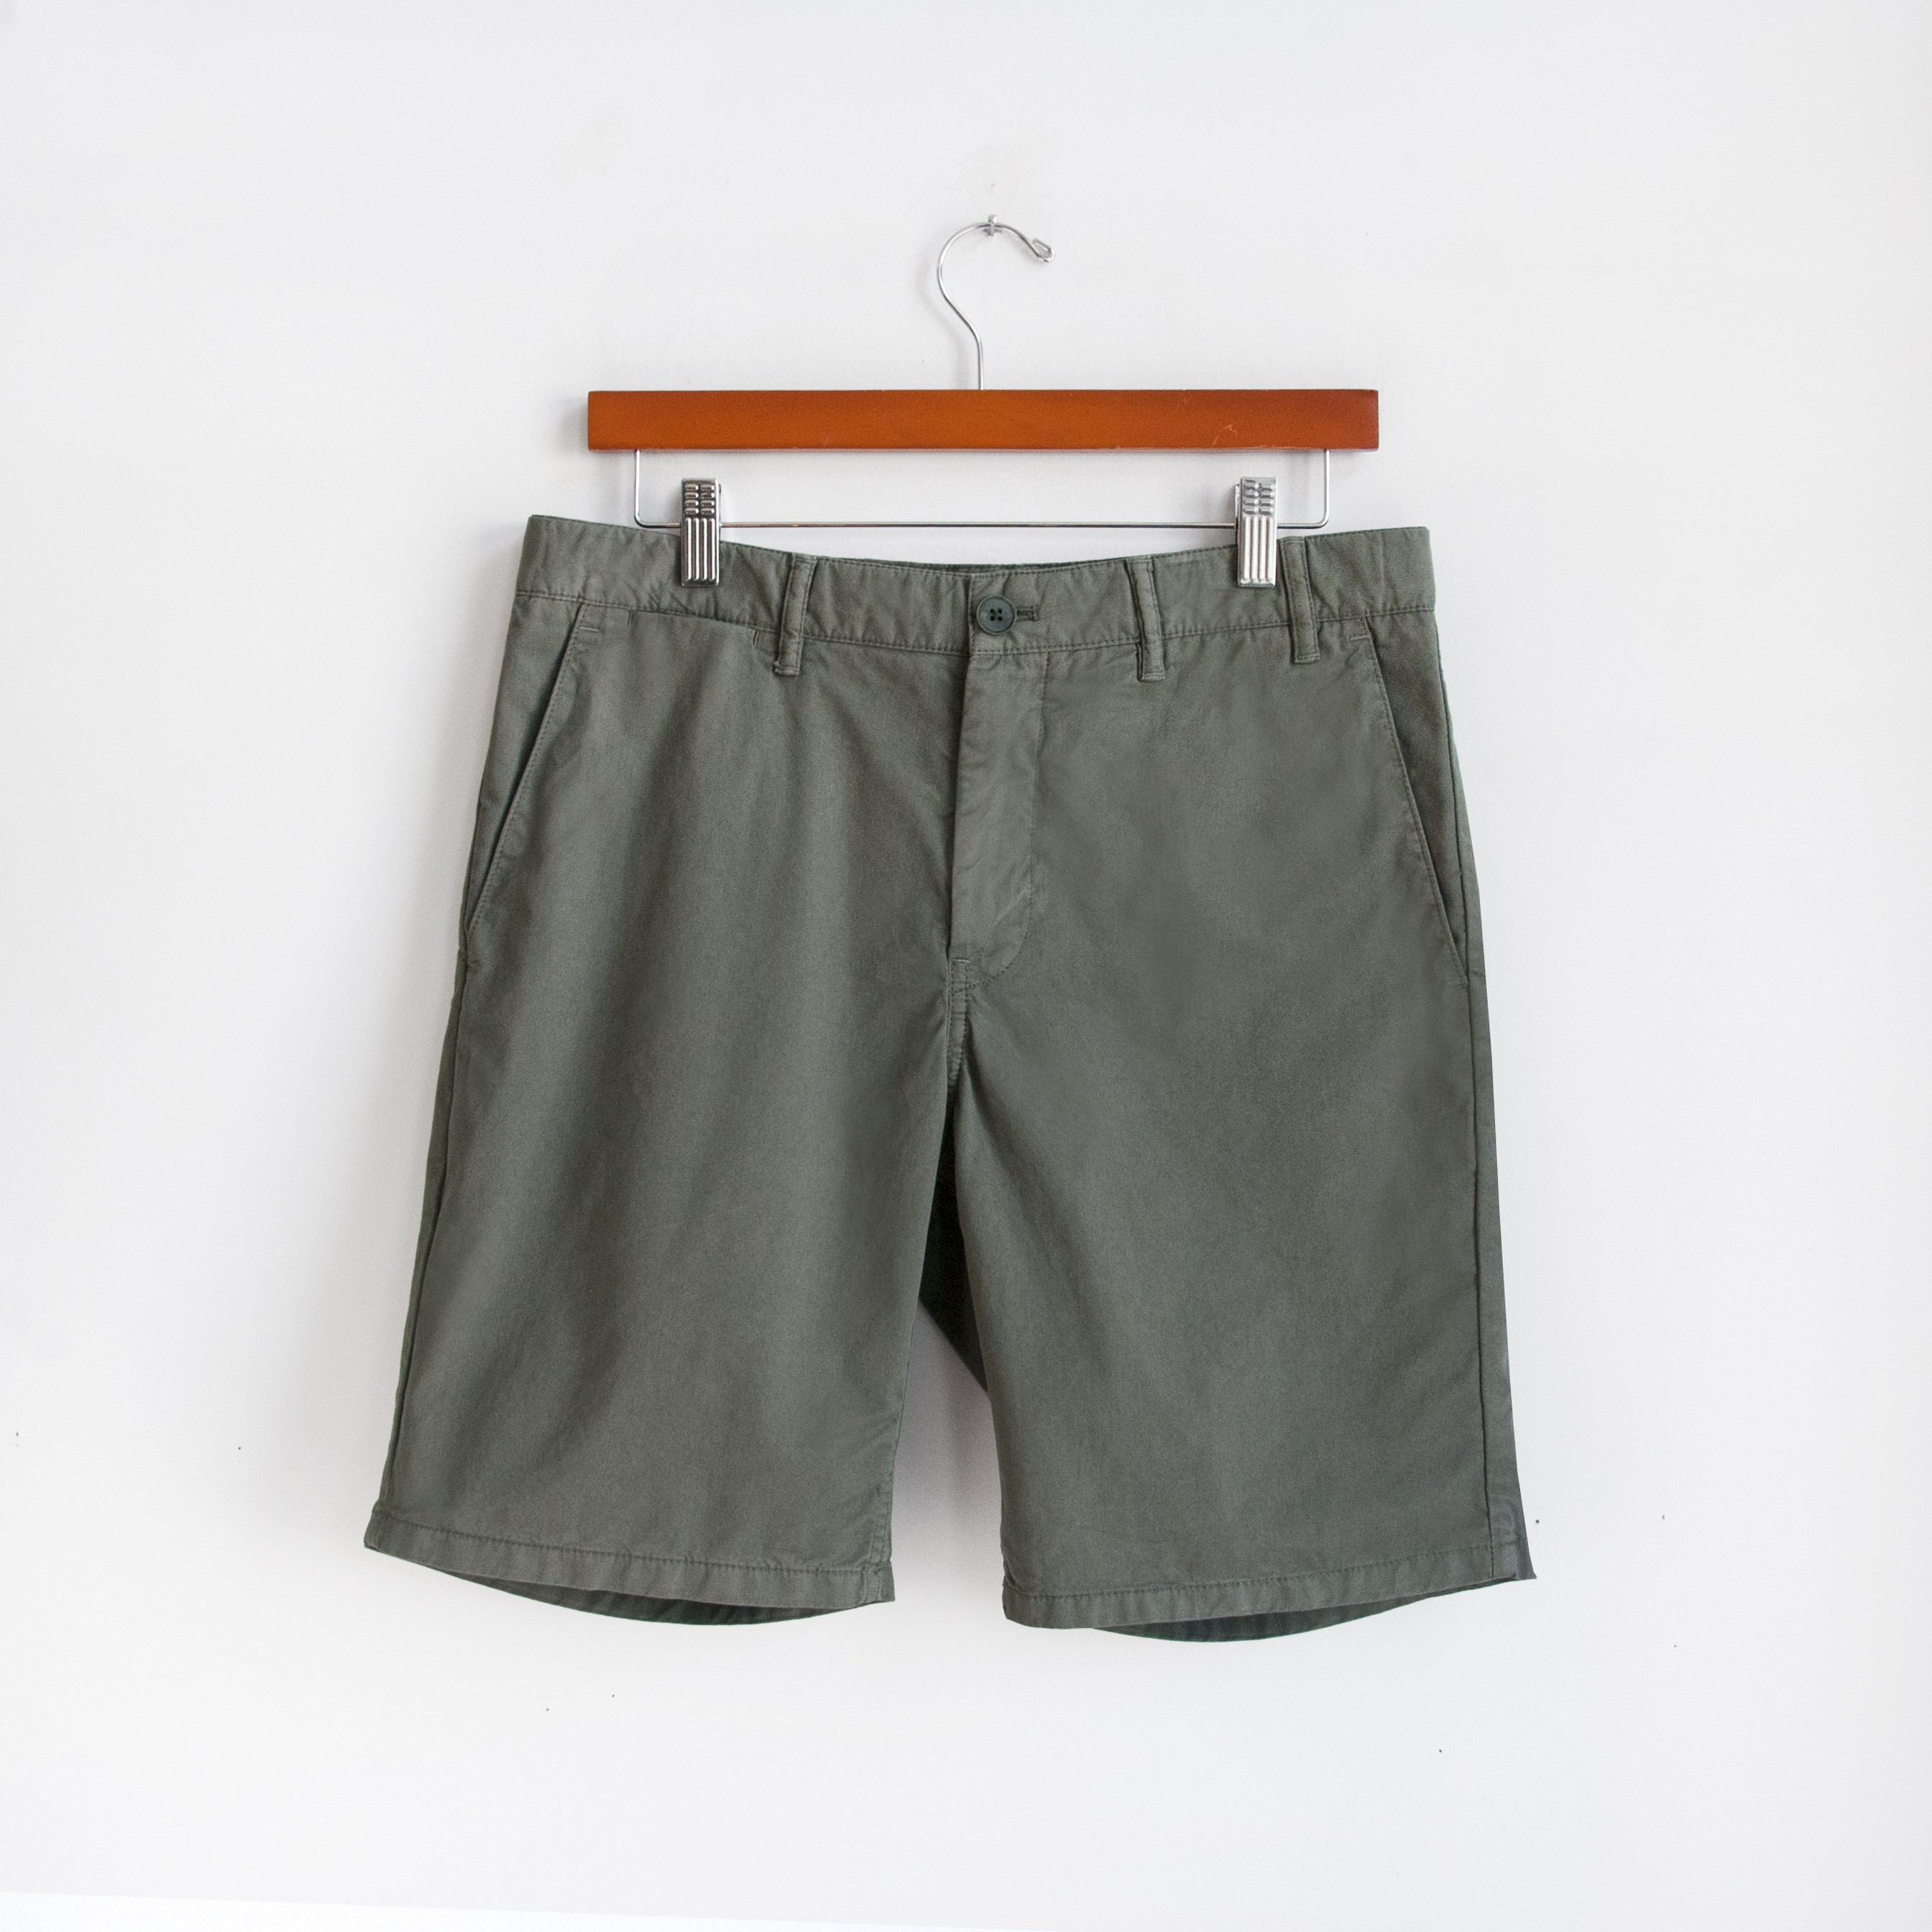 8448aace5aa Norse Projects Aros Light Twill Shorts - Dried Olive | Grailed